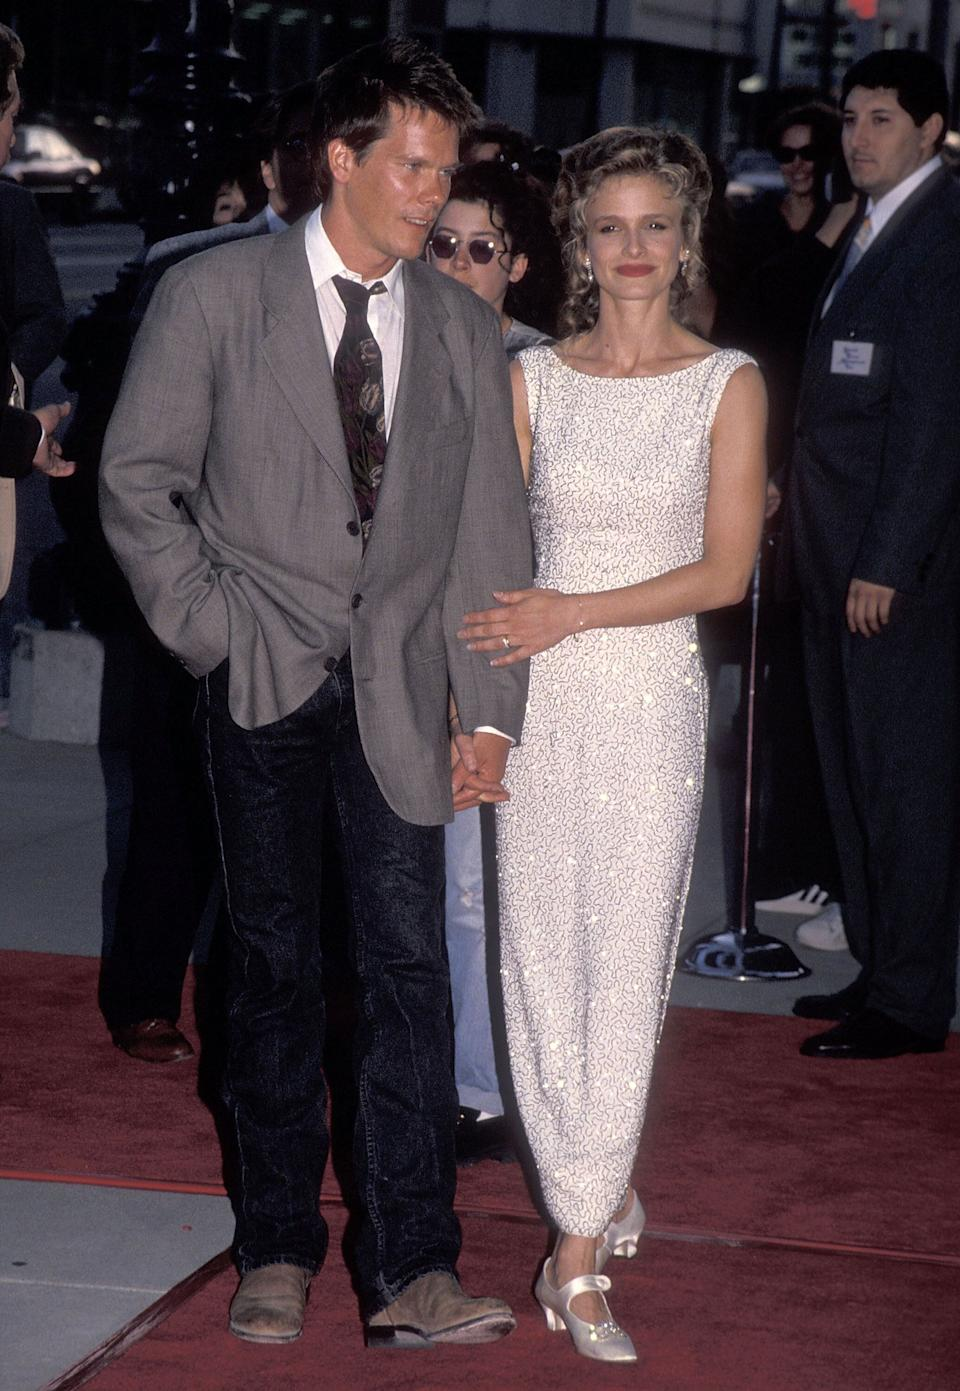 """Bacon and Sedgwick attend the """"Heart and Souls"""" premiere at the Academy Theatre in Beverly Hills, California."""